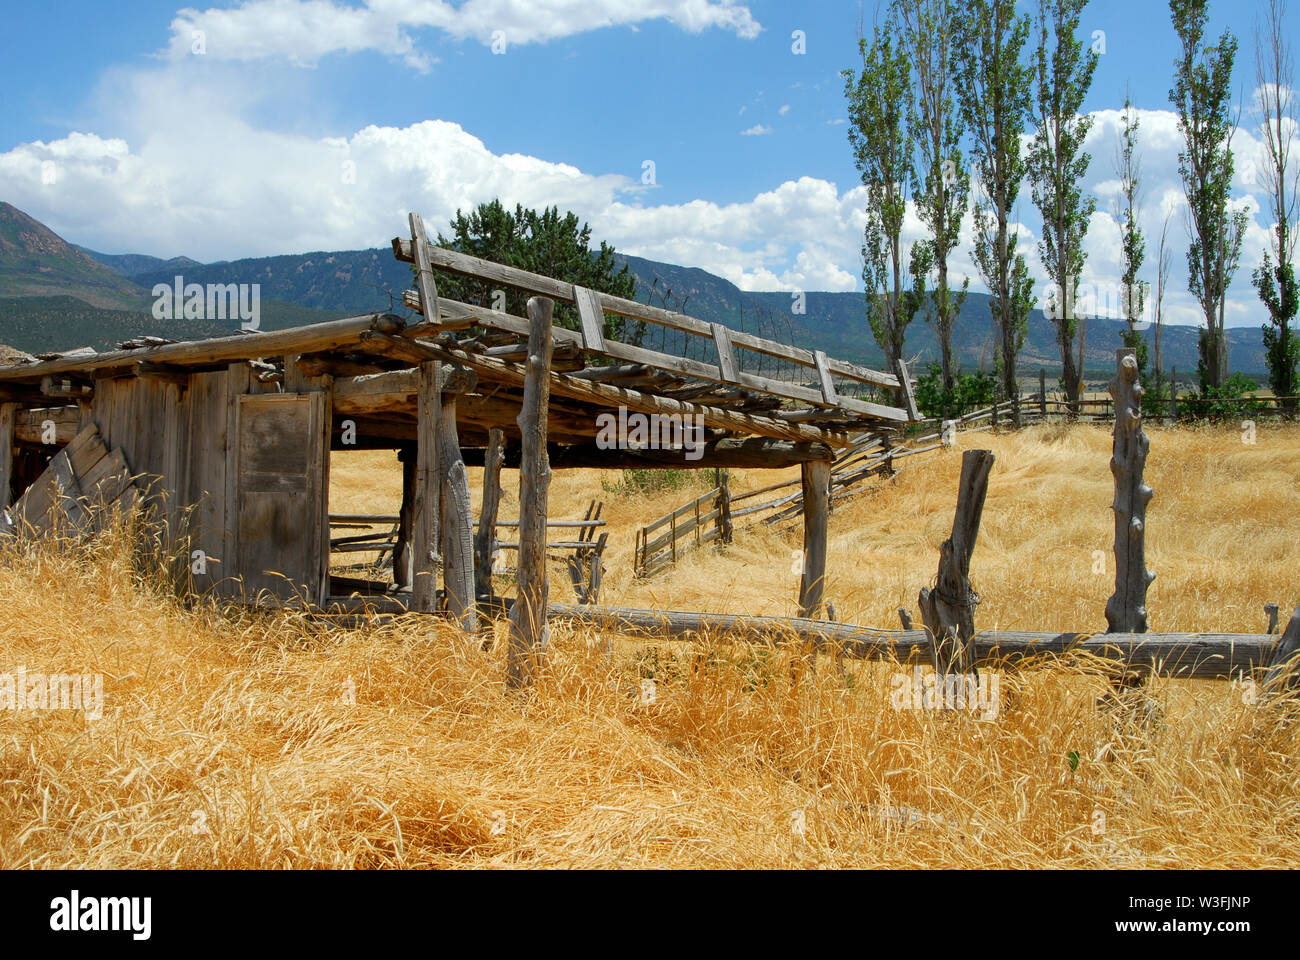 Southwestern landscape of ruins of an old abandoned ranch with stables and dry grass framed in by the mountains - Stock Image